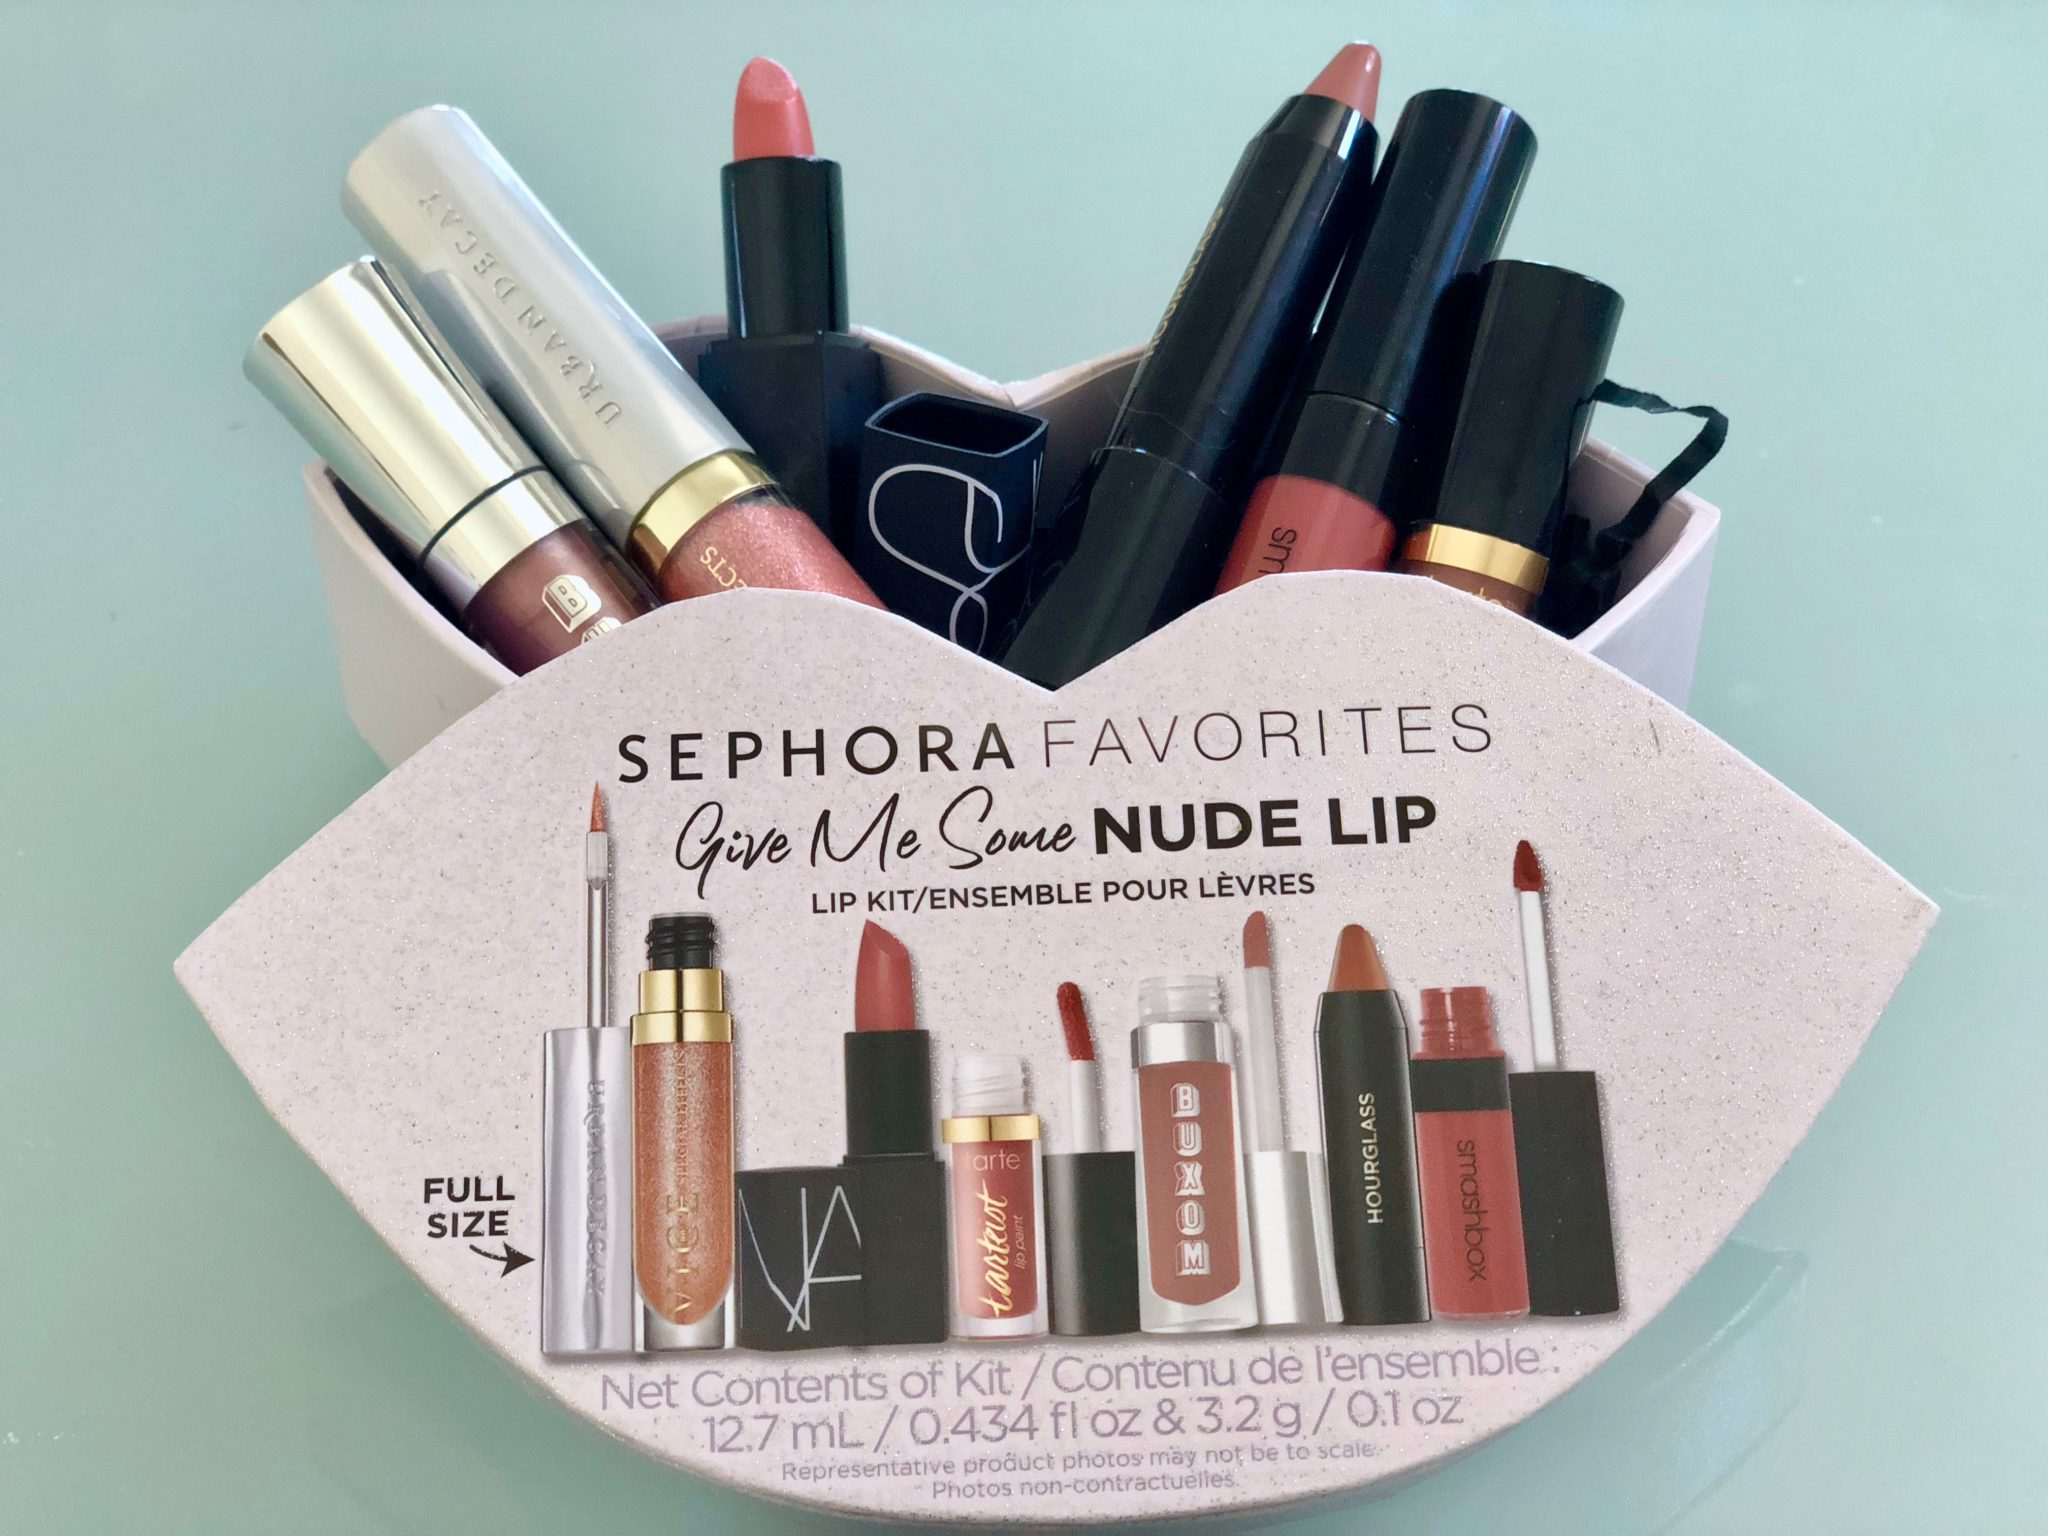 IS IT WORTH IT? | Sephora Favorites 2018 Give Me Some Nude Lip kit